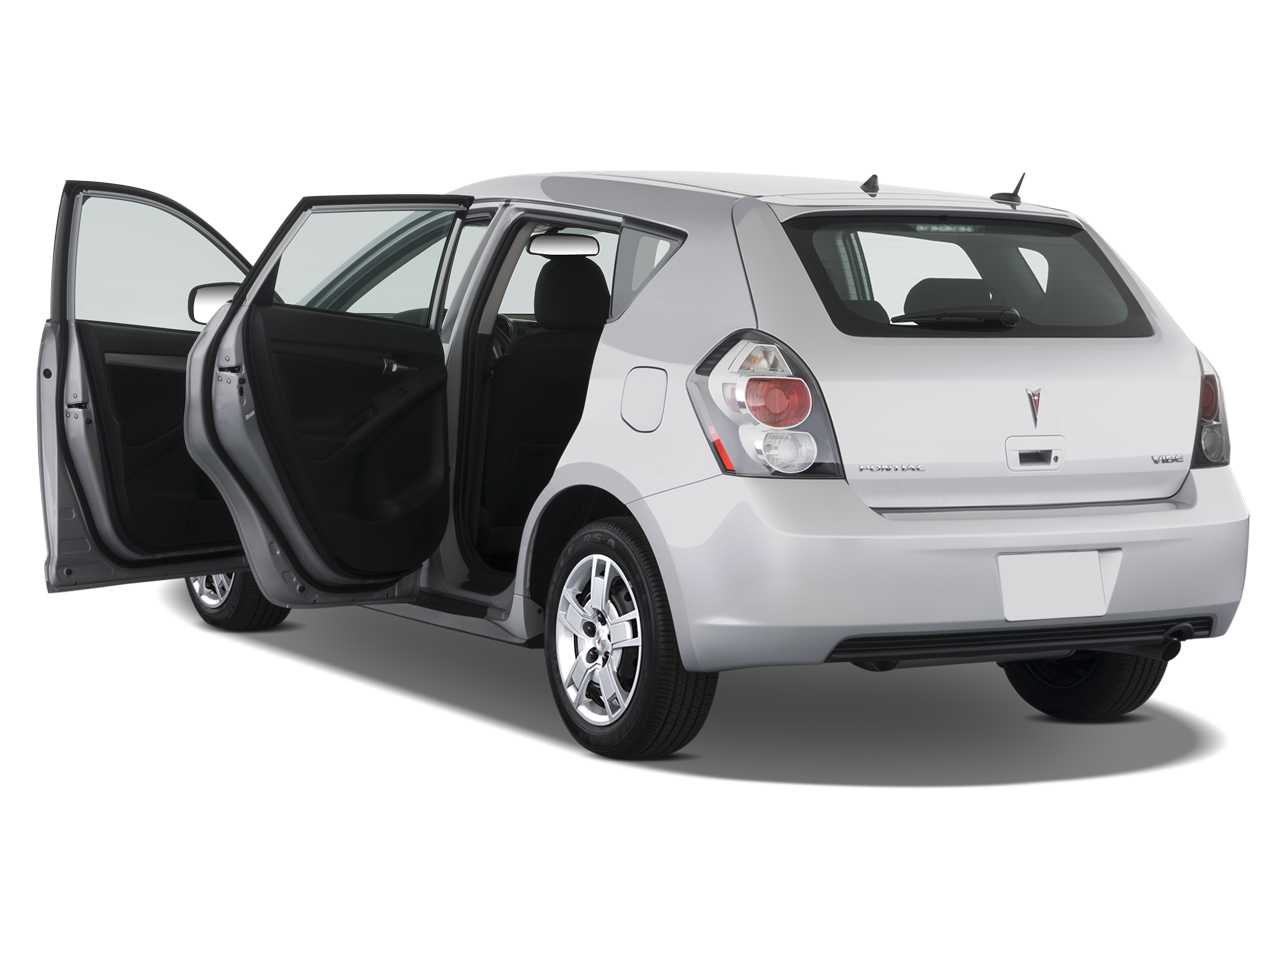 pontiac vibe wheel covers. Black Bedroom Furniture Sets. Home Design Ideas